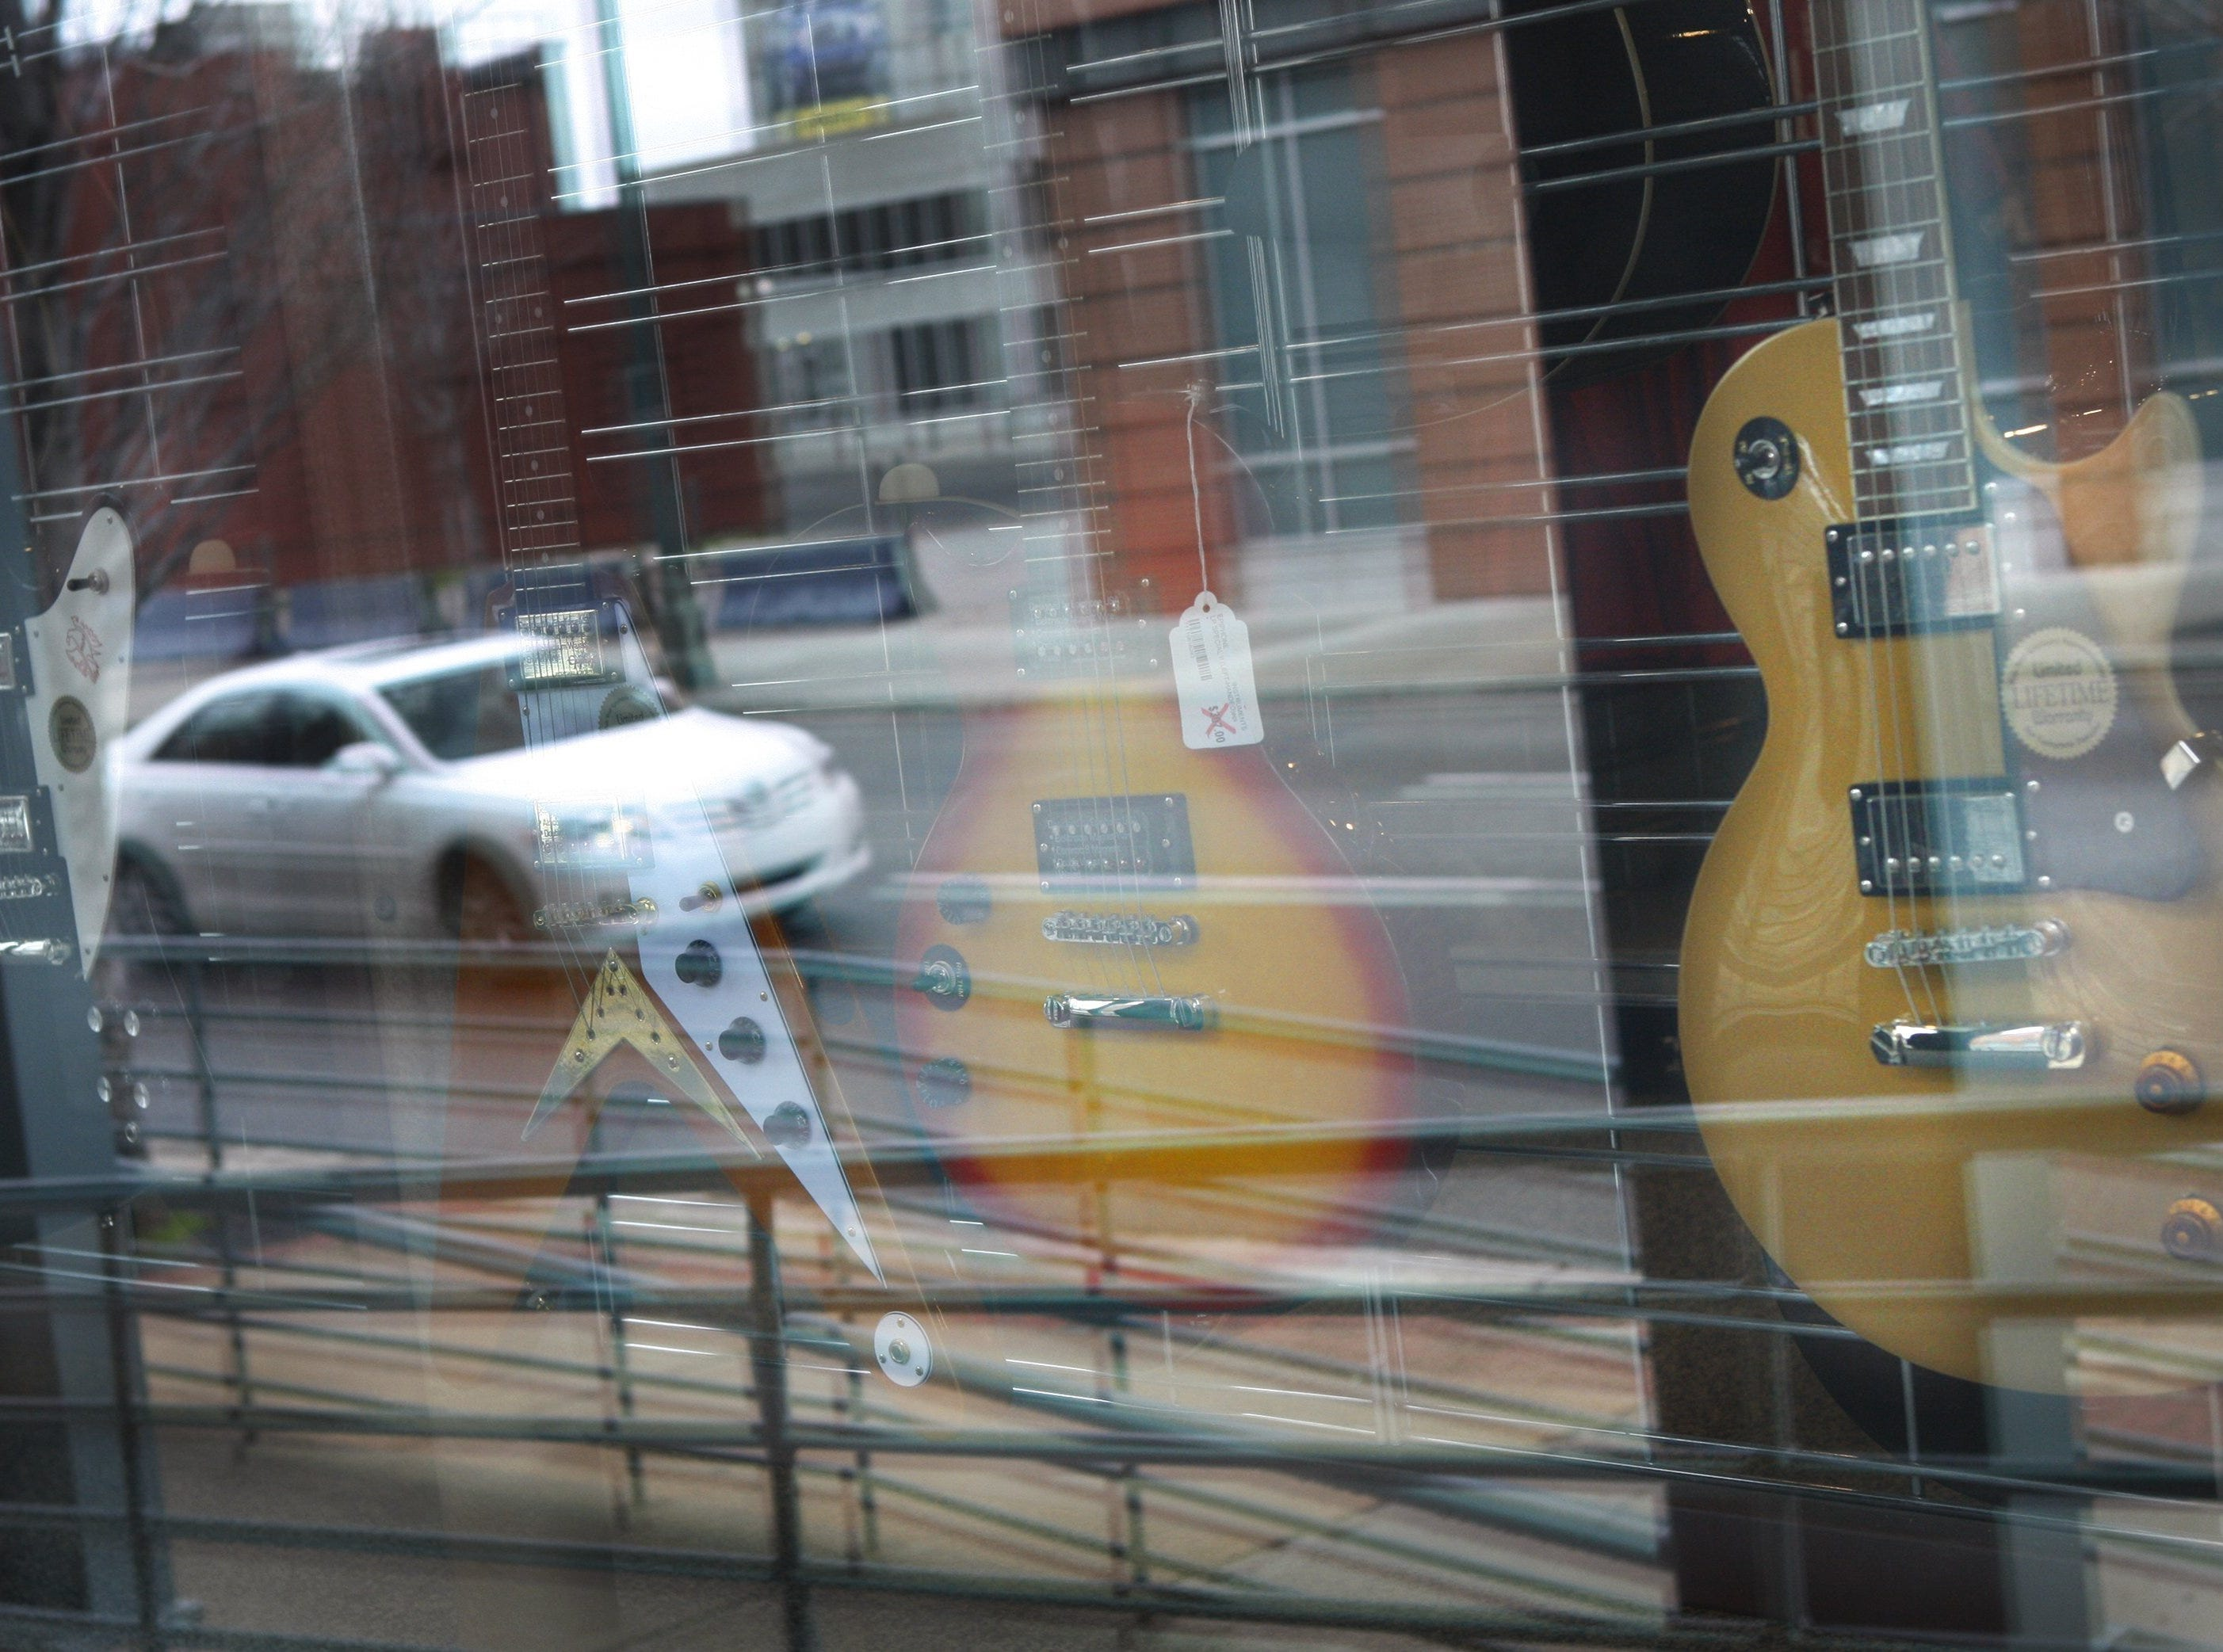 Jan. 25, 2012 - Guitars are displayed in the window of the Gibson Guitar Factory.